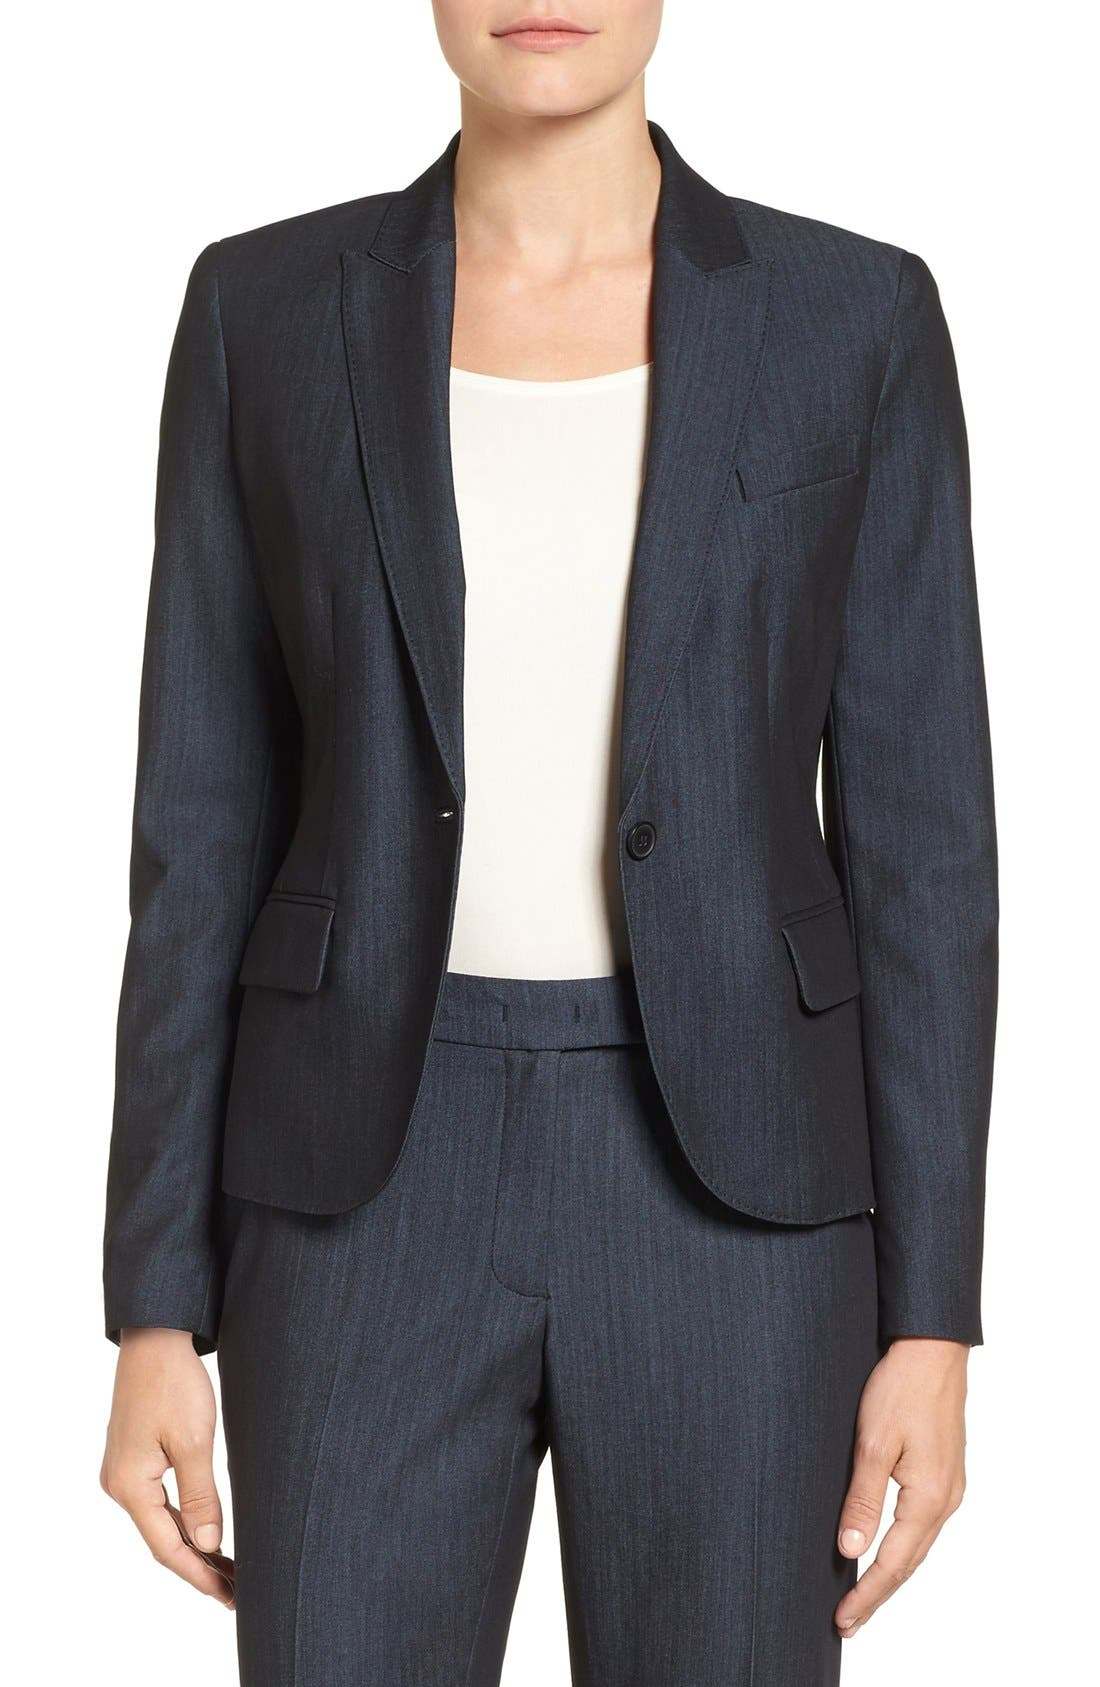 ANNE KLEIN, Twill One-Button Jacket, Main thumbnail 1, color, 400